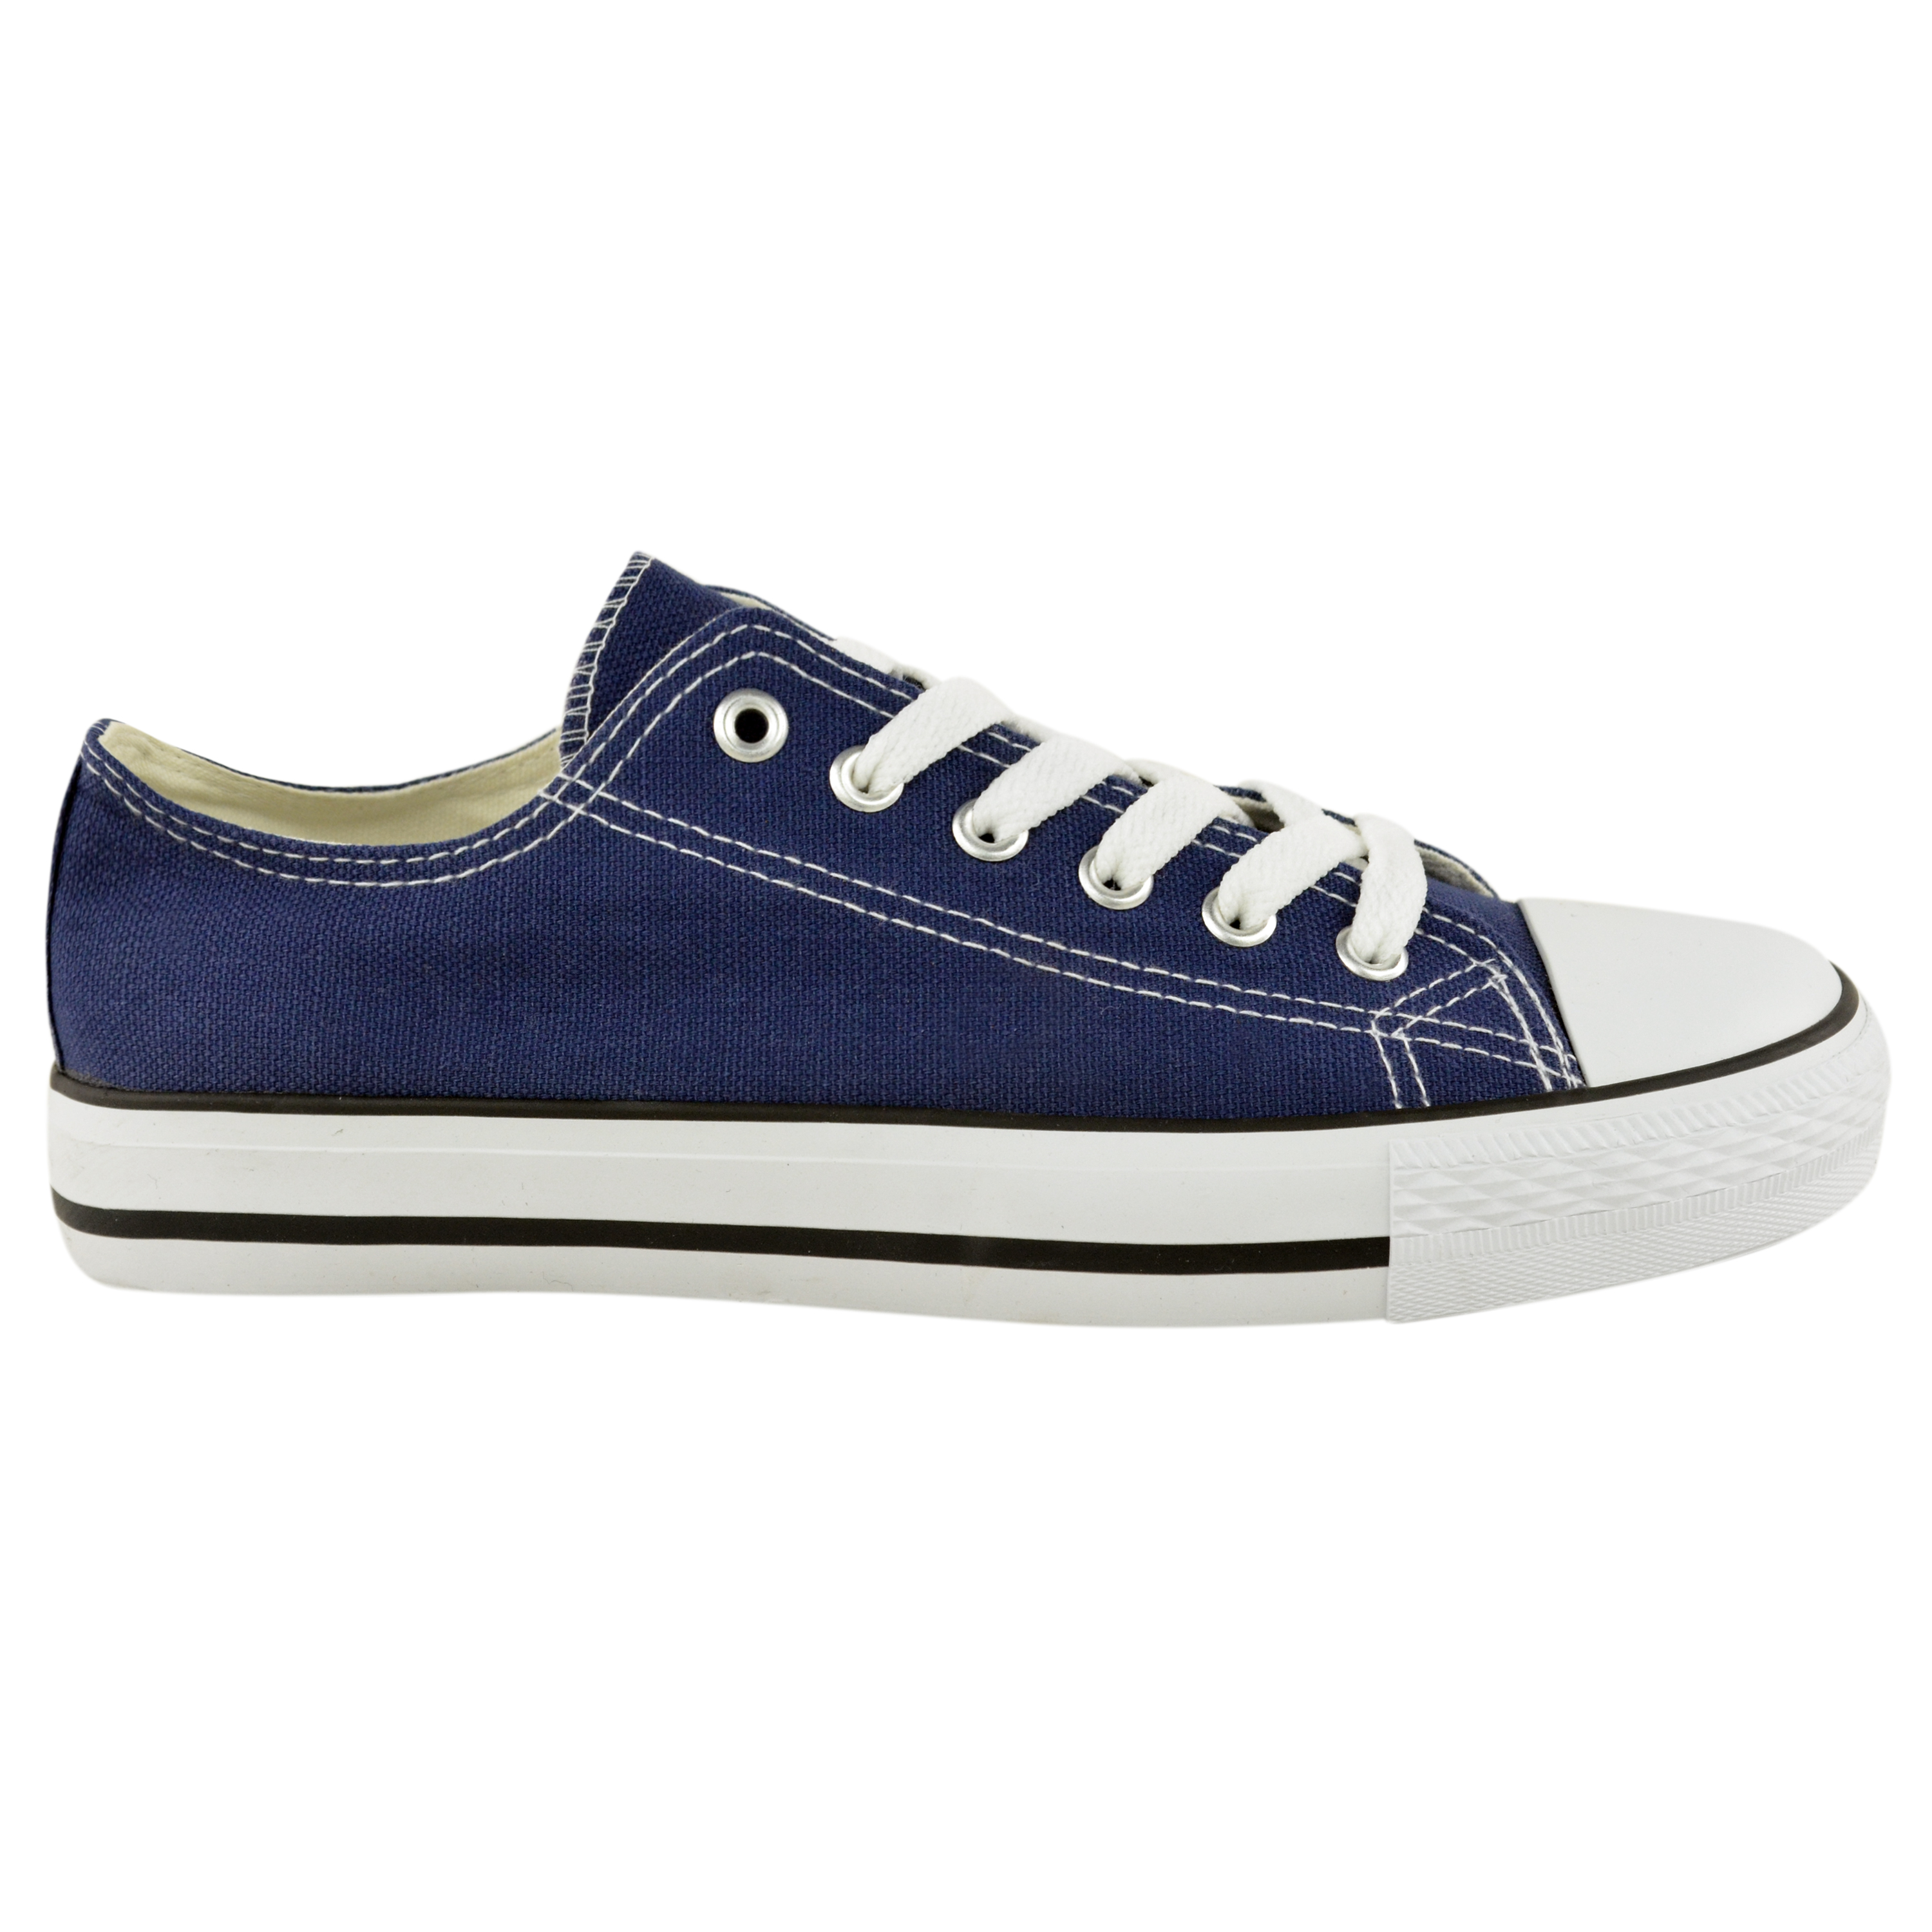 shoes womens canvas lace up plimsoll flat